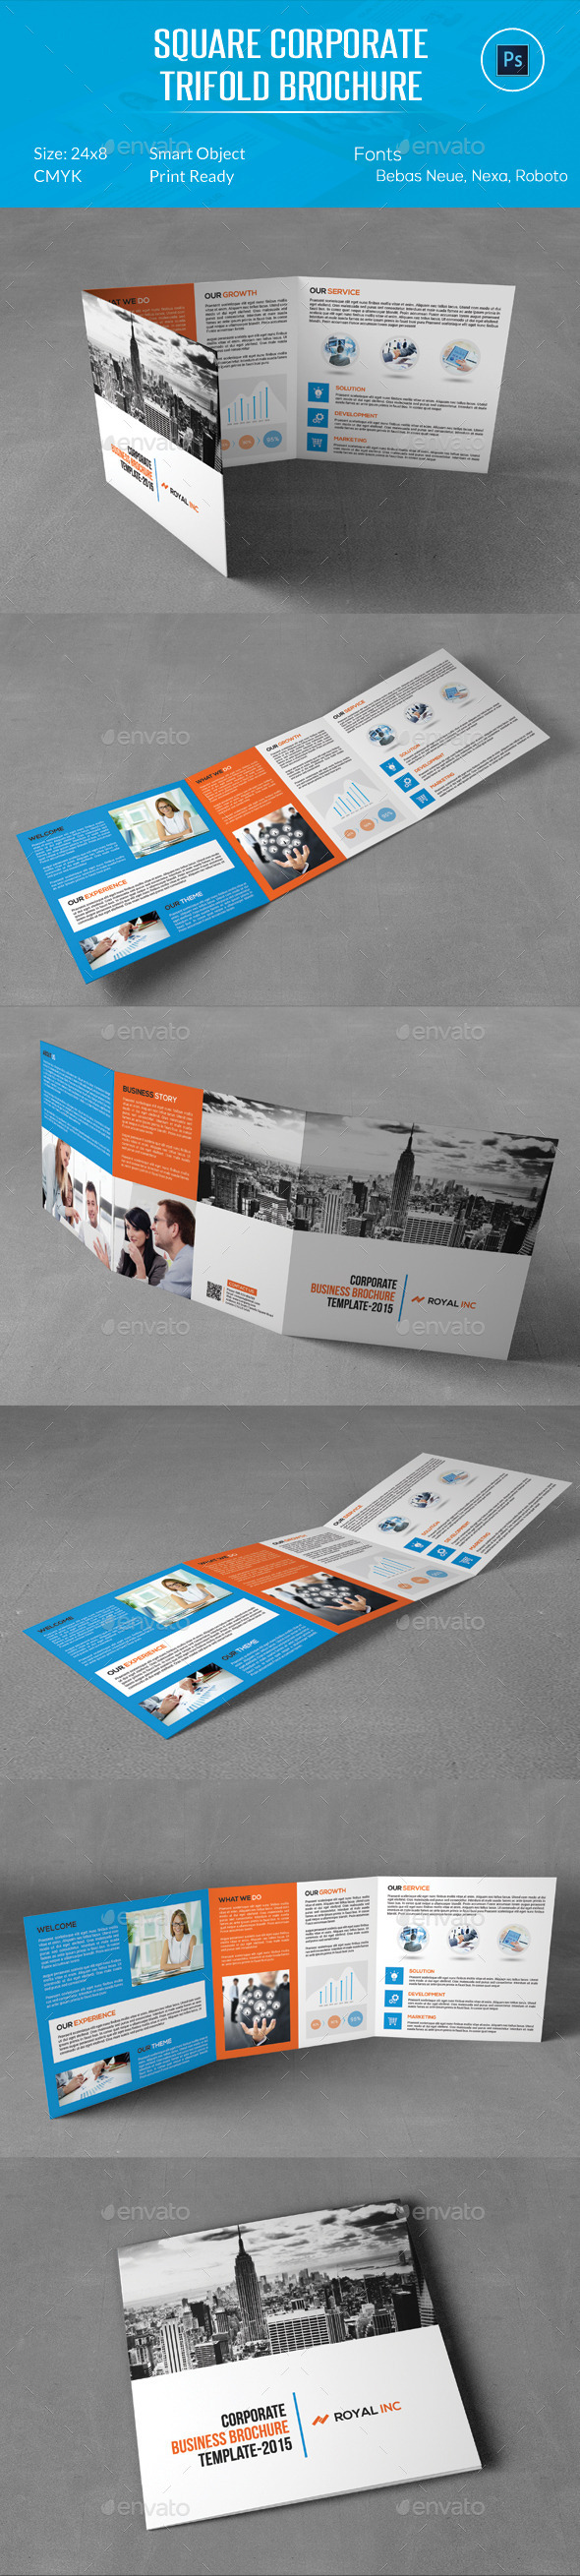 Square Corporate Trifold Brochure - Corporate Brochures